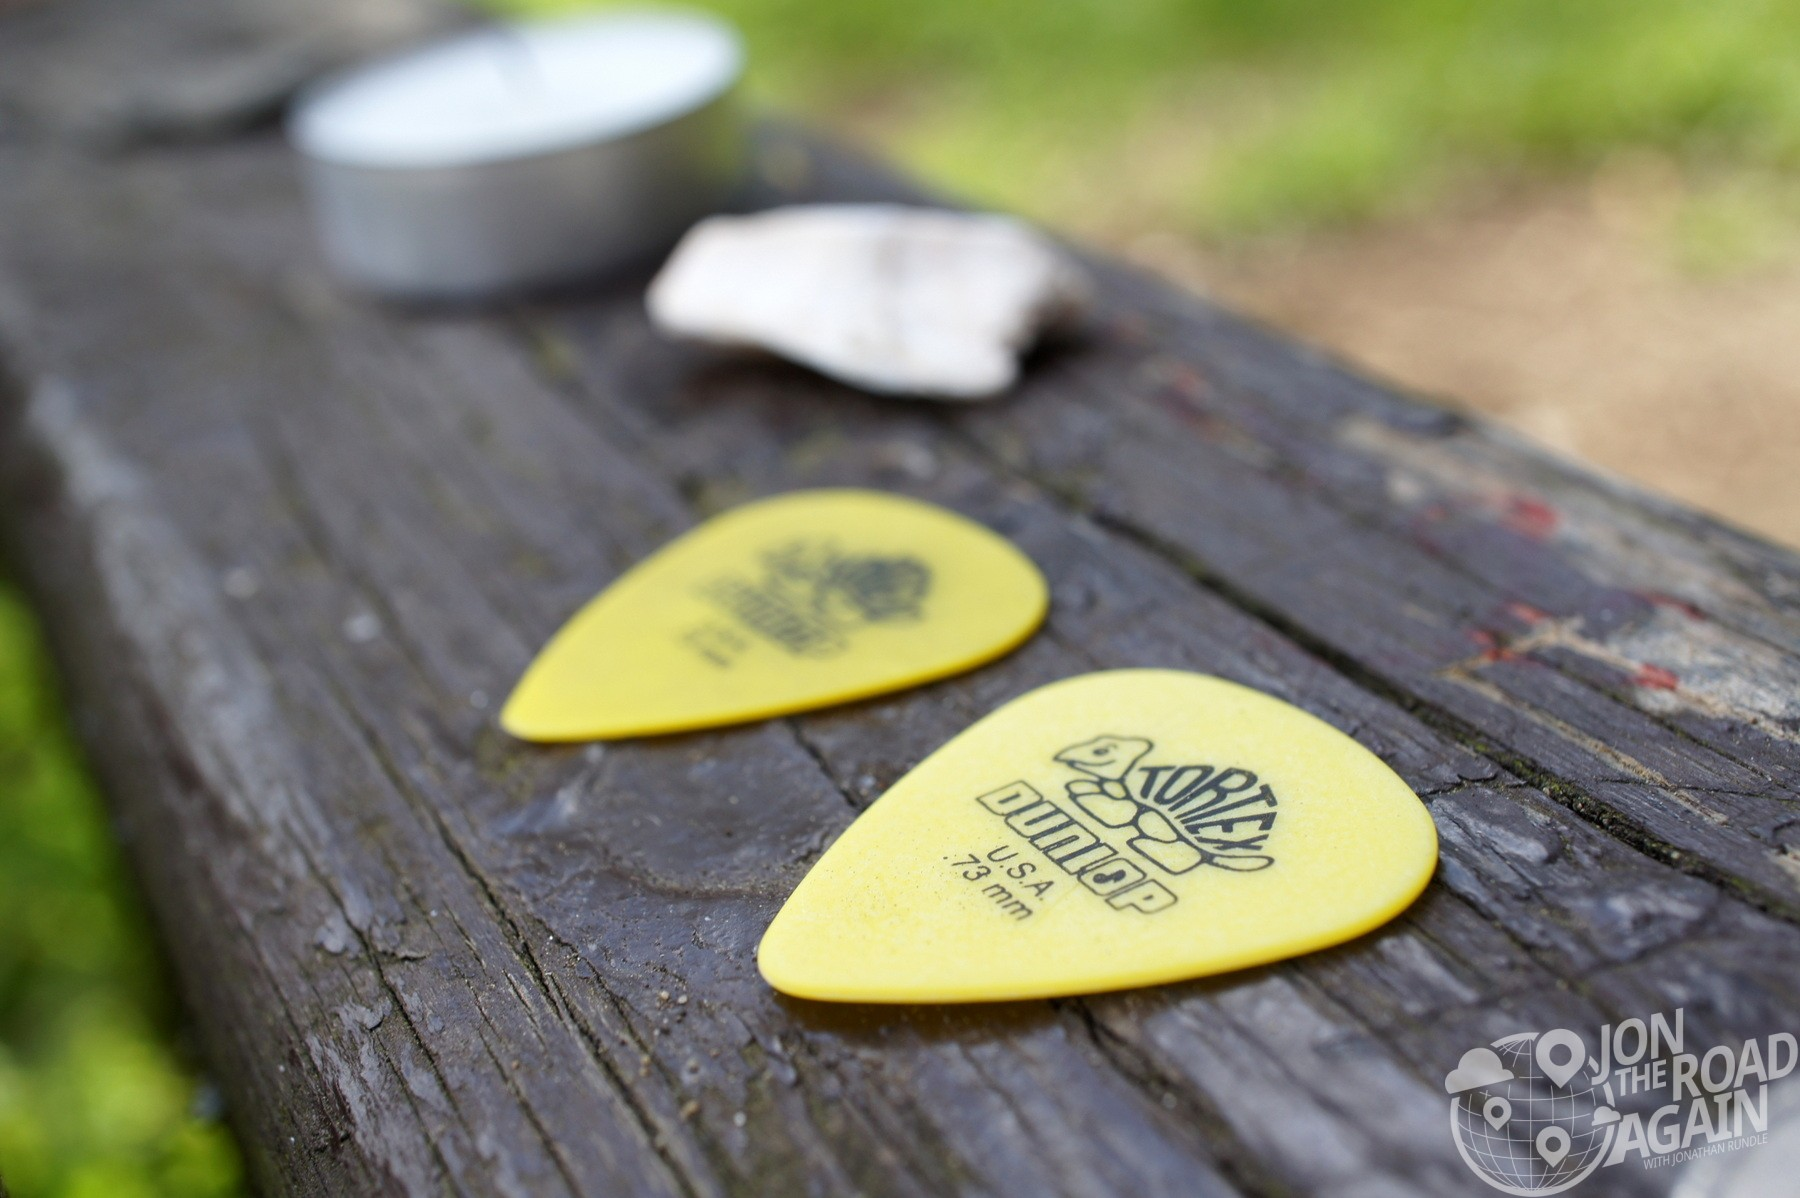 Guitar picks on the bench